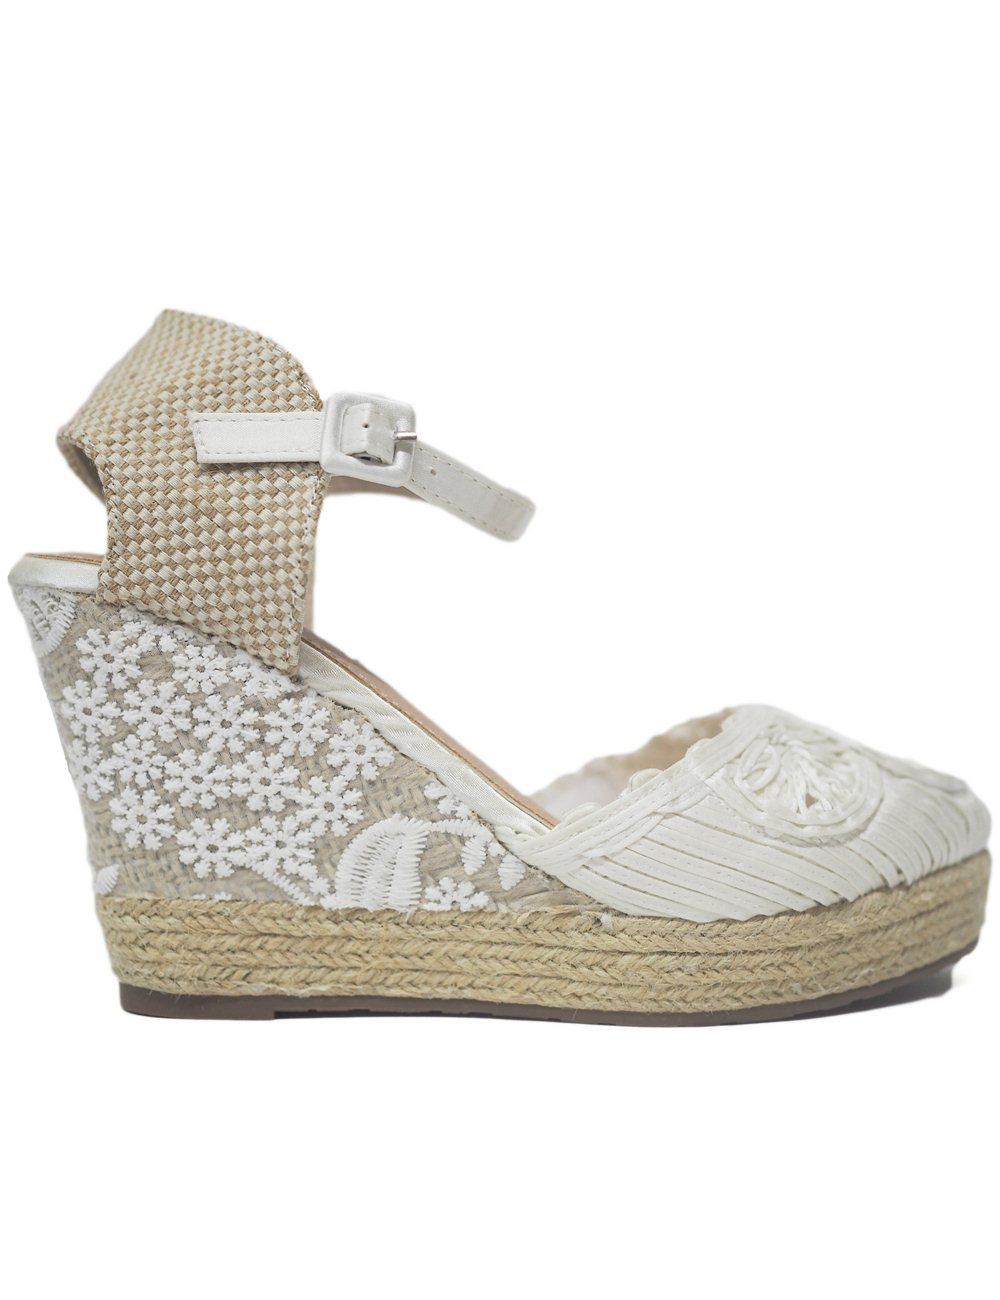 Cuñas Novia Mandarina Shoes